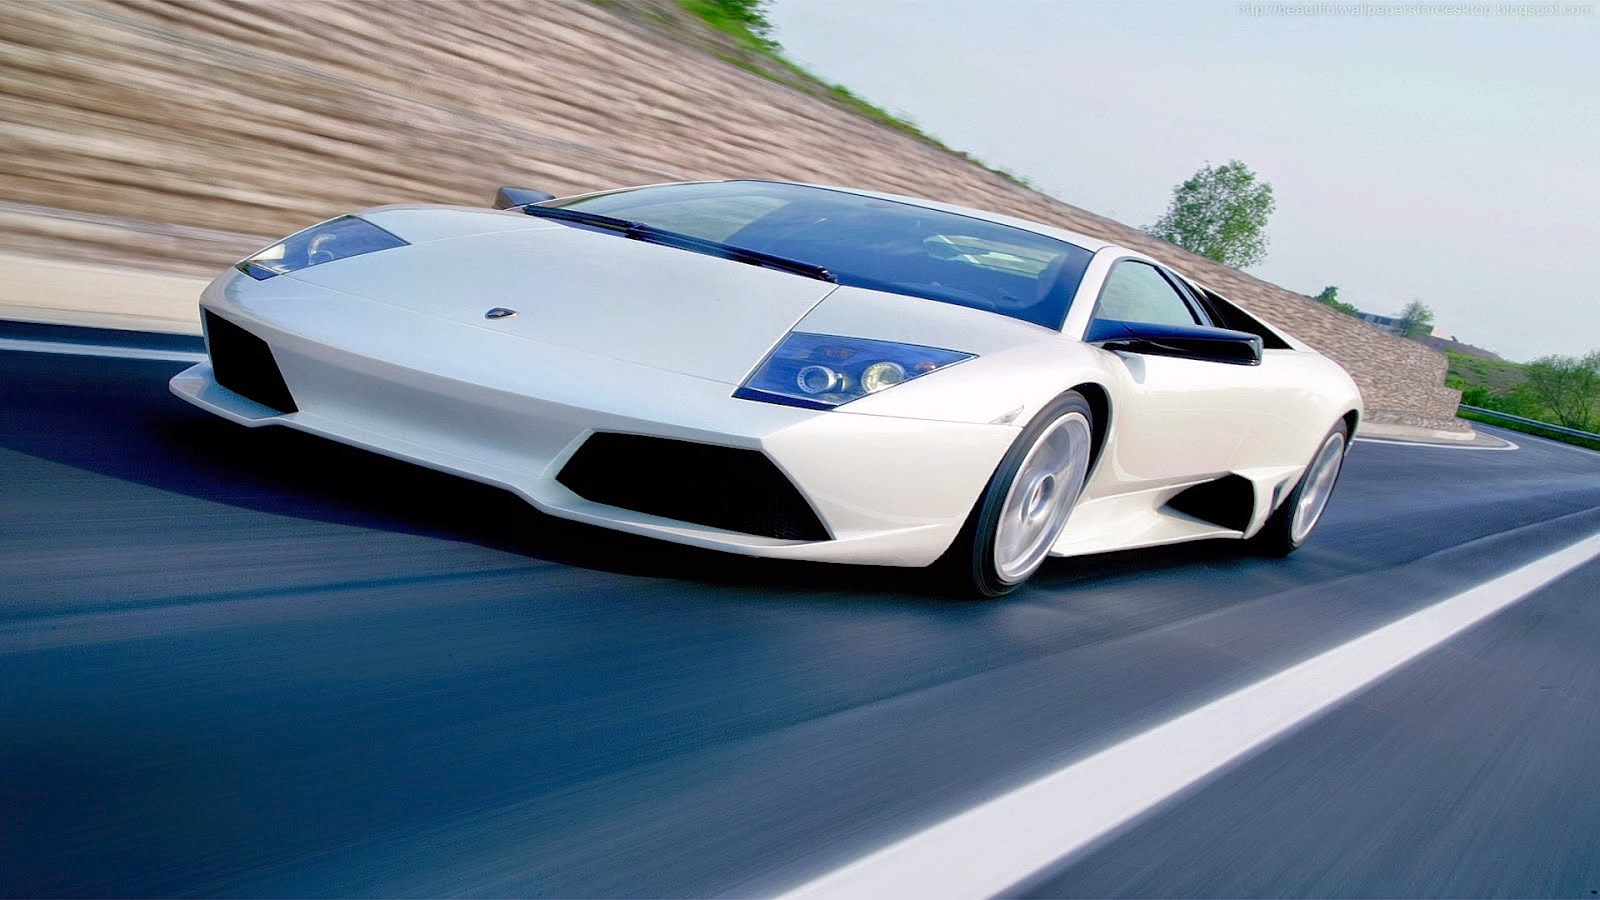 Beautiful White Cars Wallpapers Desktop